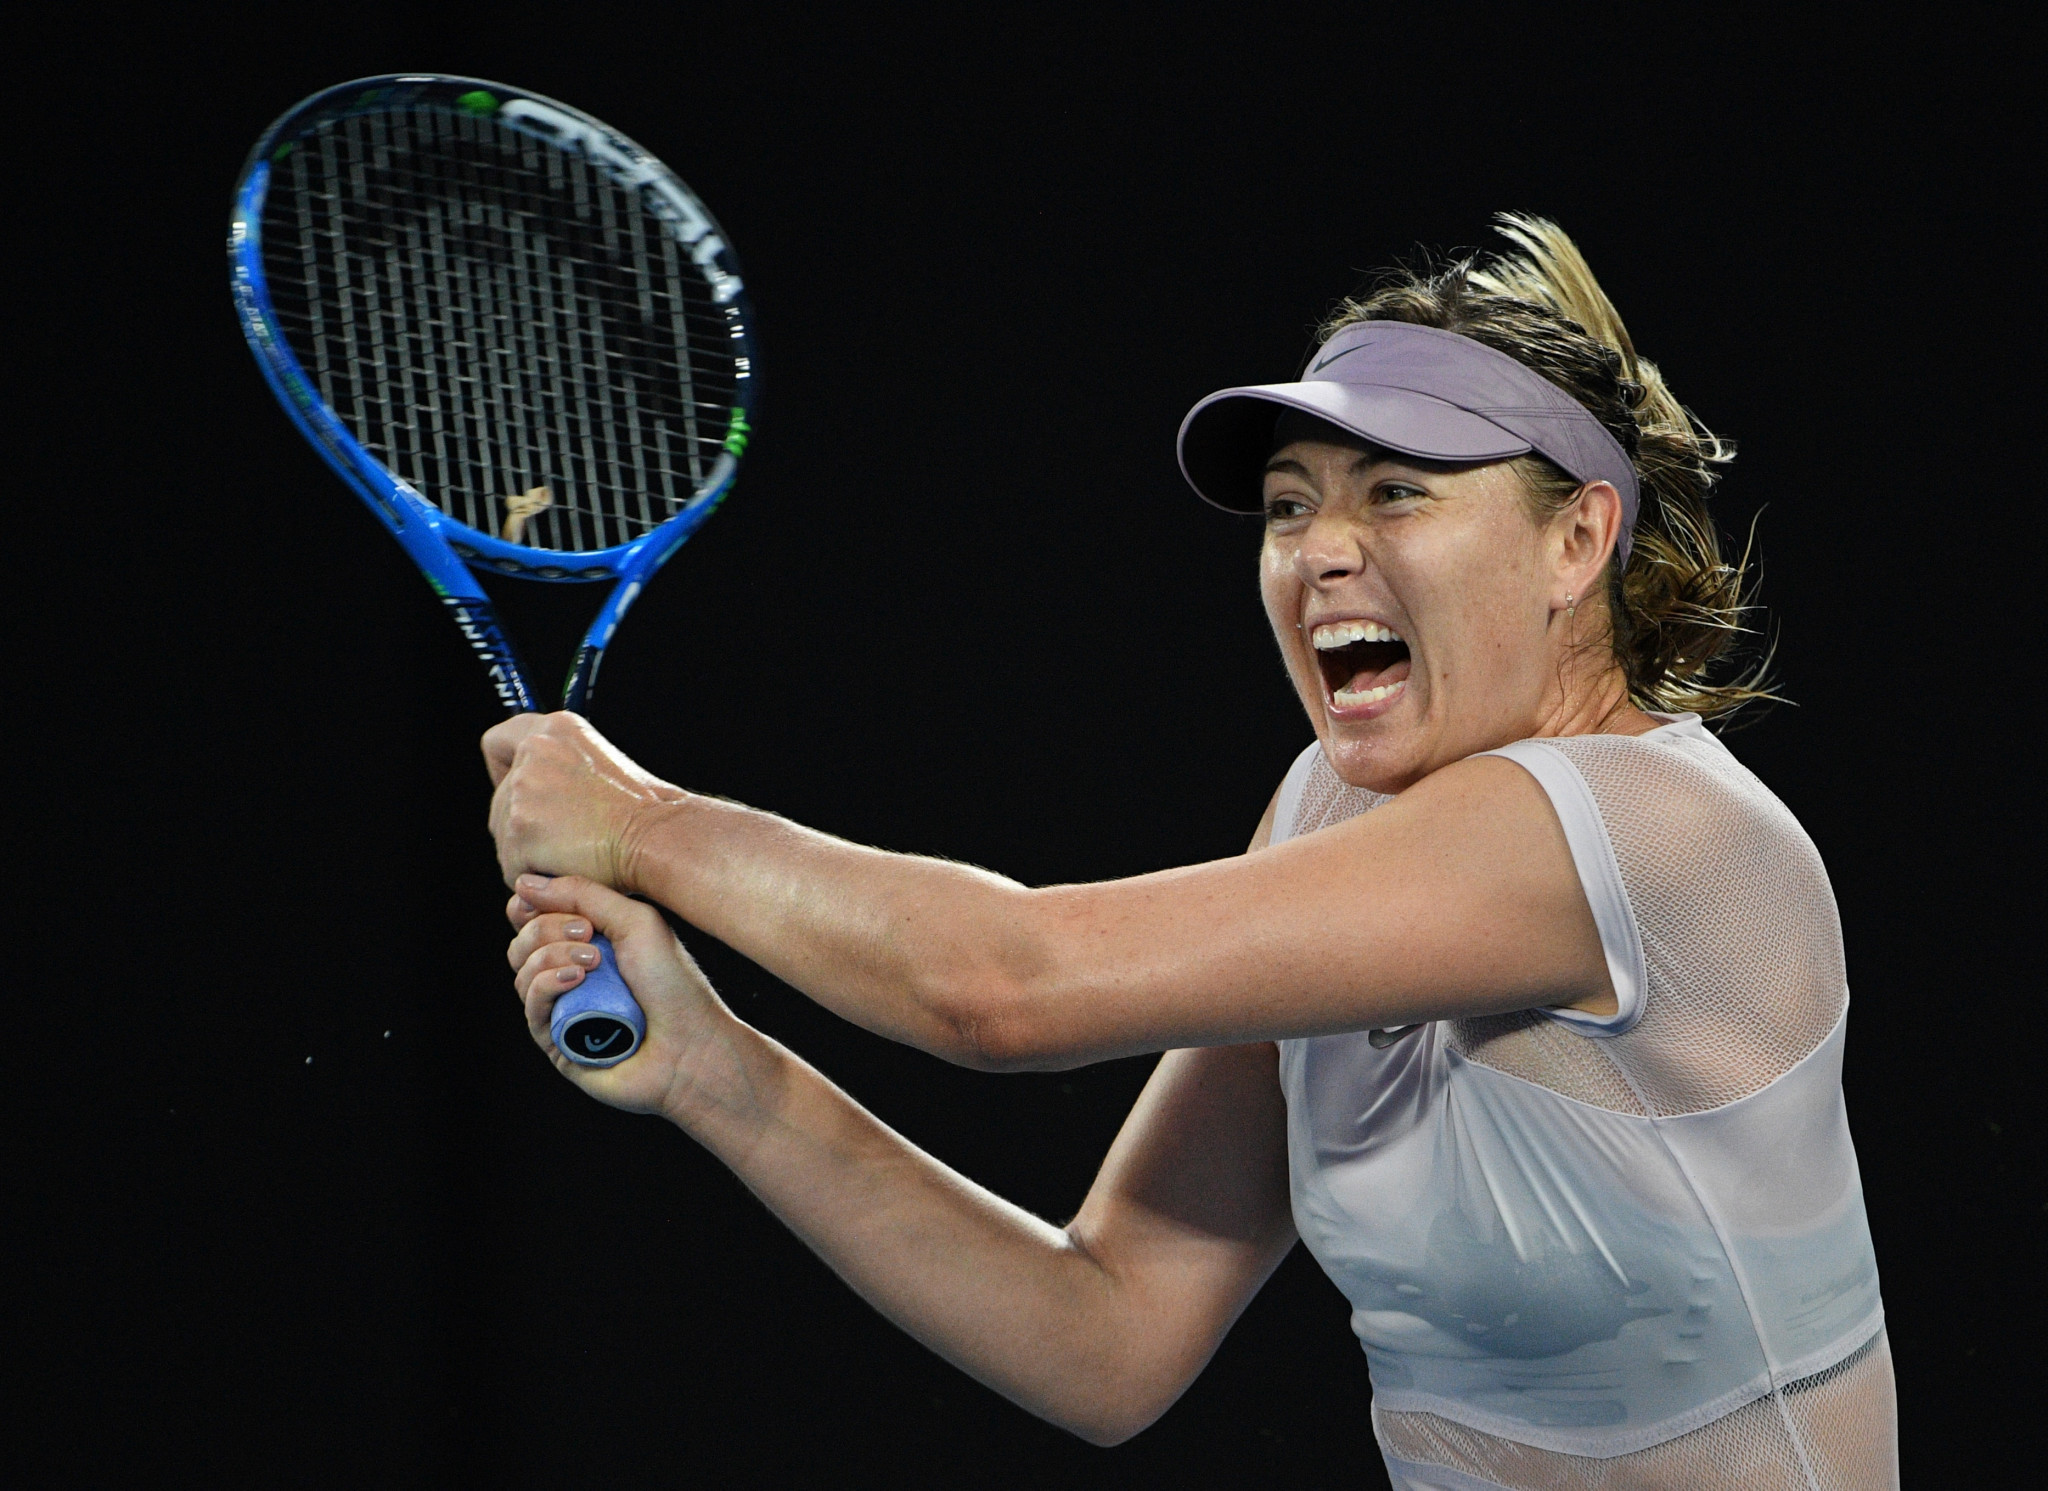 Tennis superstar Maria Sharapova is the most high-profile Russian athlete to have tested positive for meldonium ©Getty Images